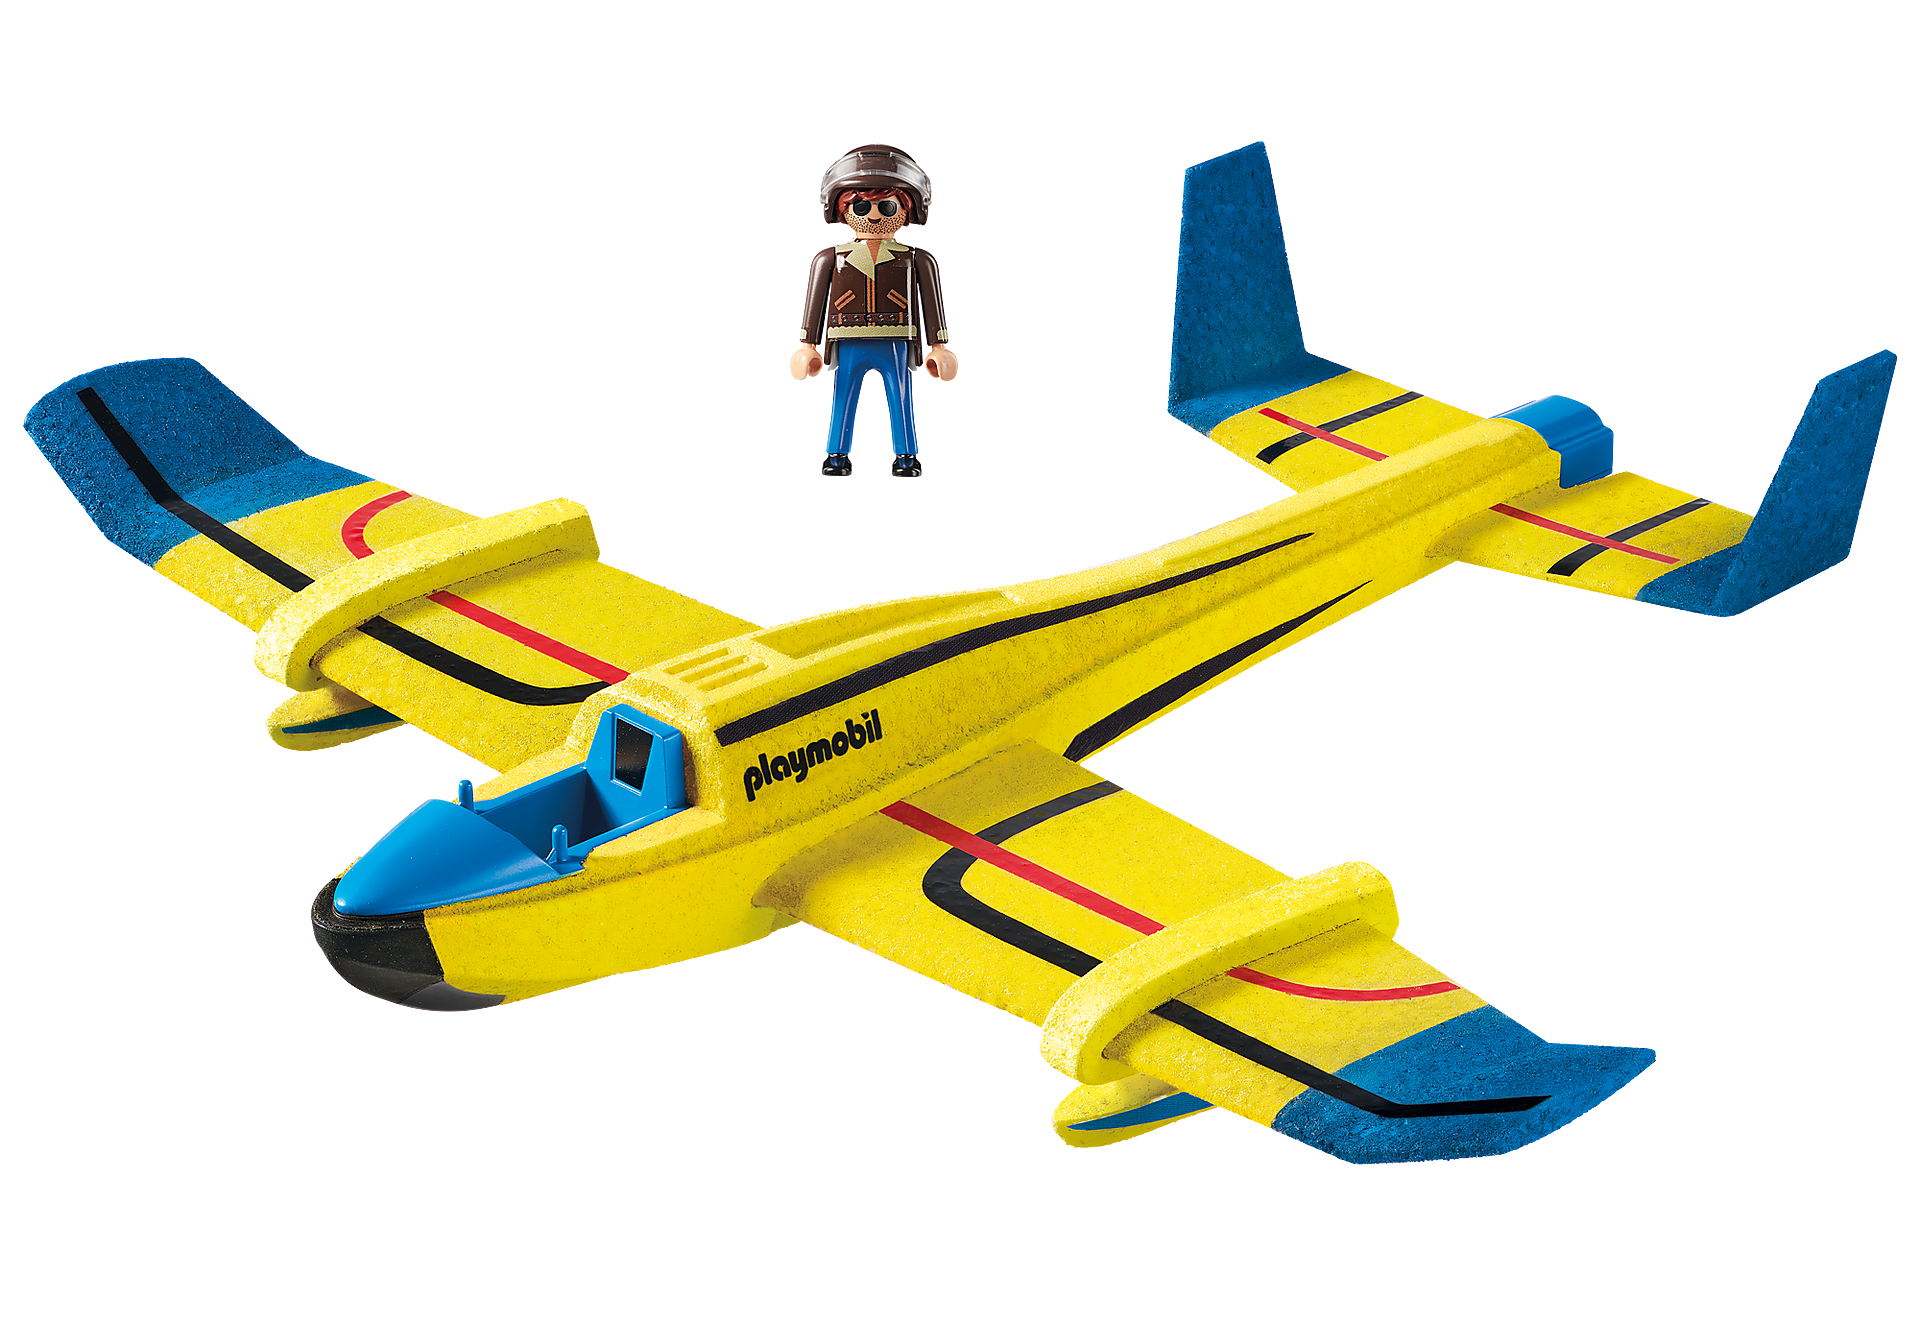 70057 Throw-and-Glide Seaplane zoom image4